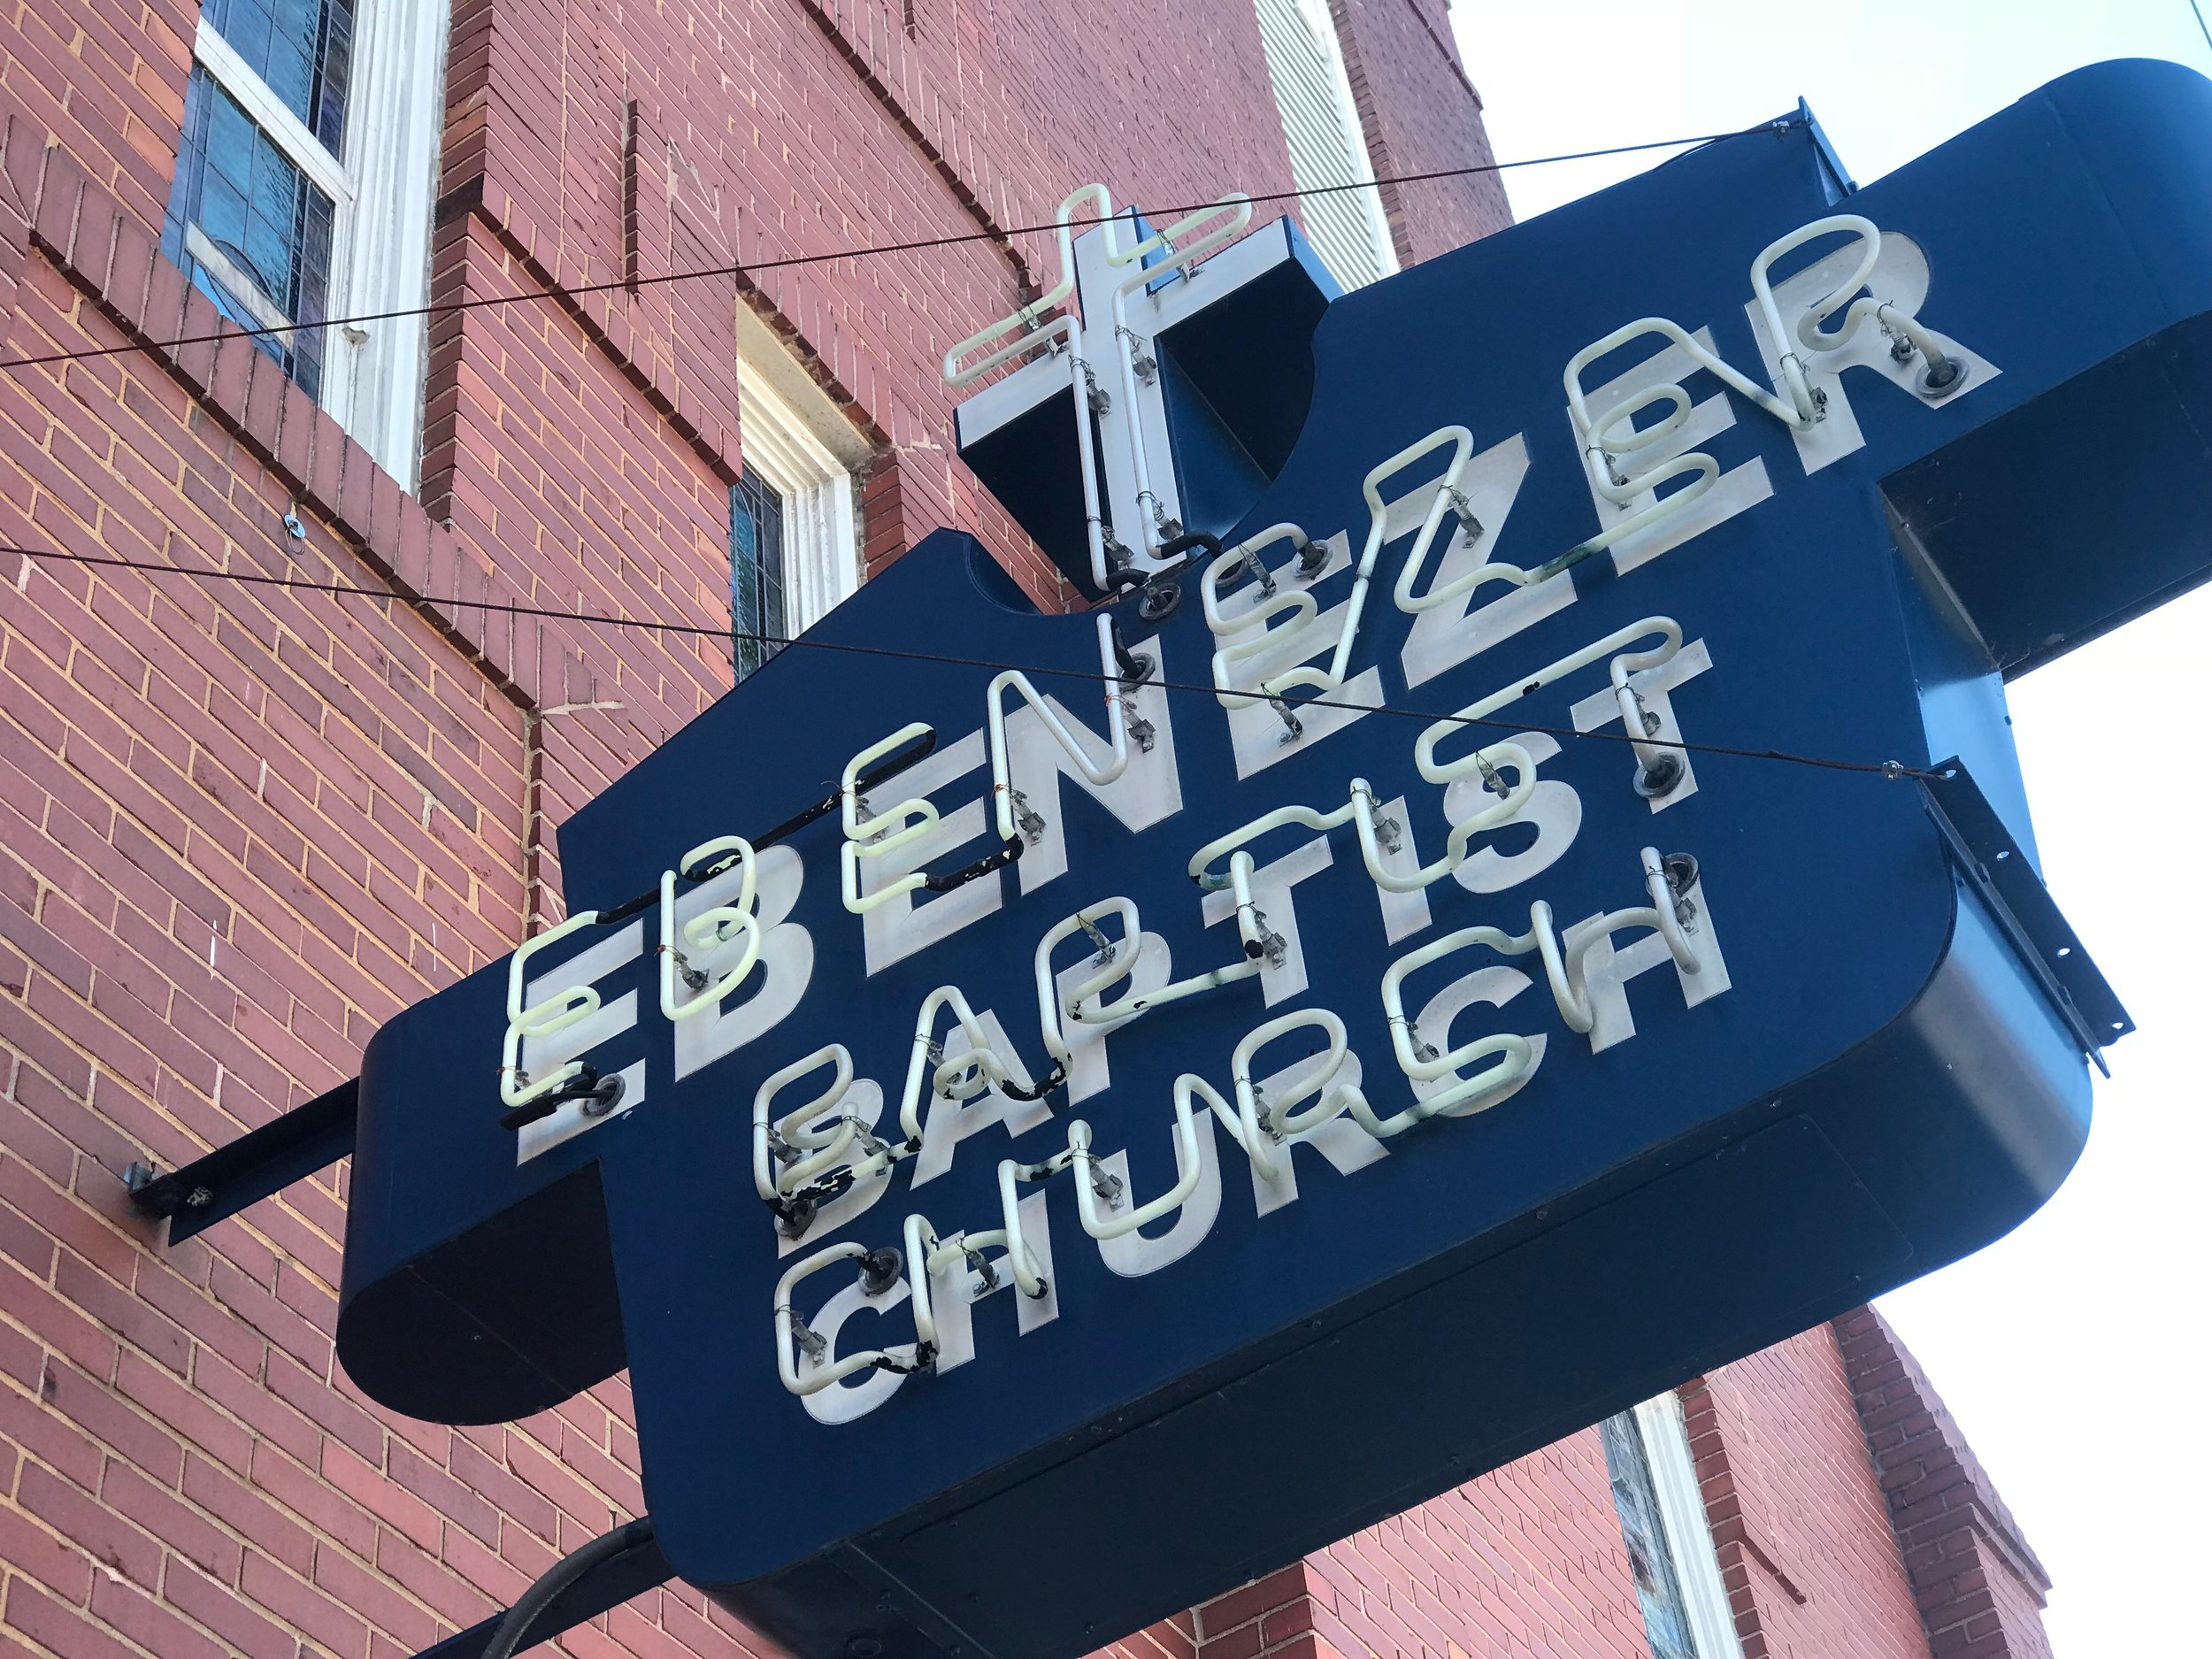 Atlanta: The voice of Dr. Martin Luther King Jr. can still be heard in the historic Ebenezer Baptist Church, which is now part of the National Park Service's MLK National Historic site. A new, larger Ebenezer Baptist Church has been built across the street